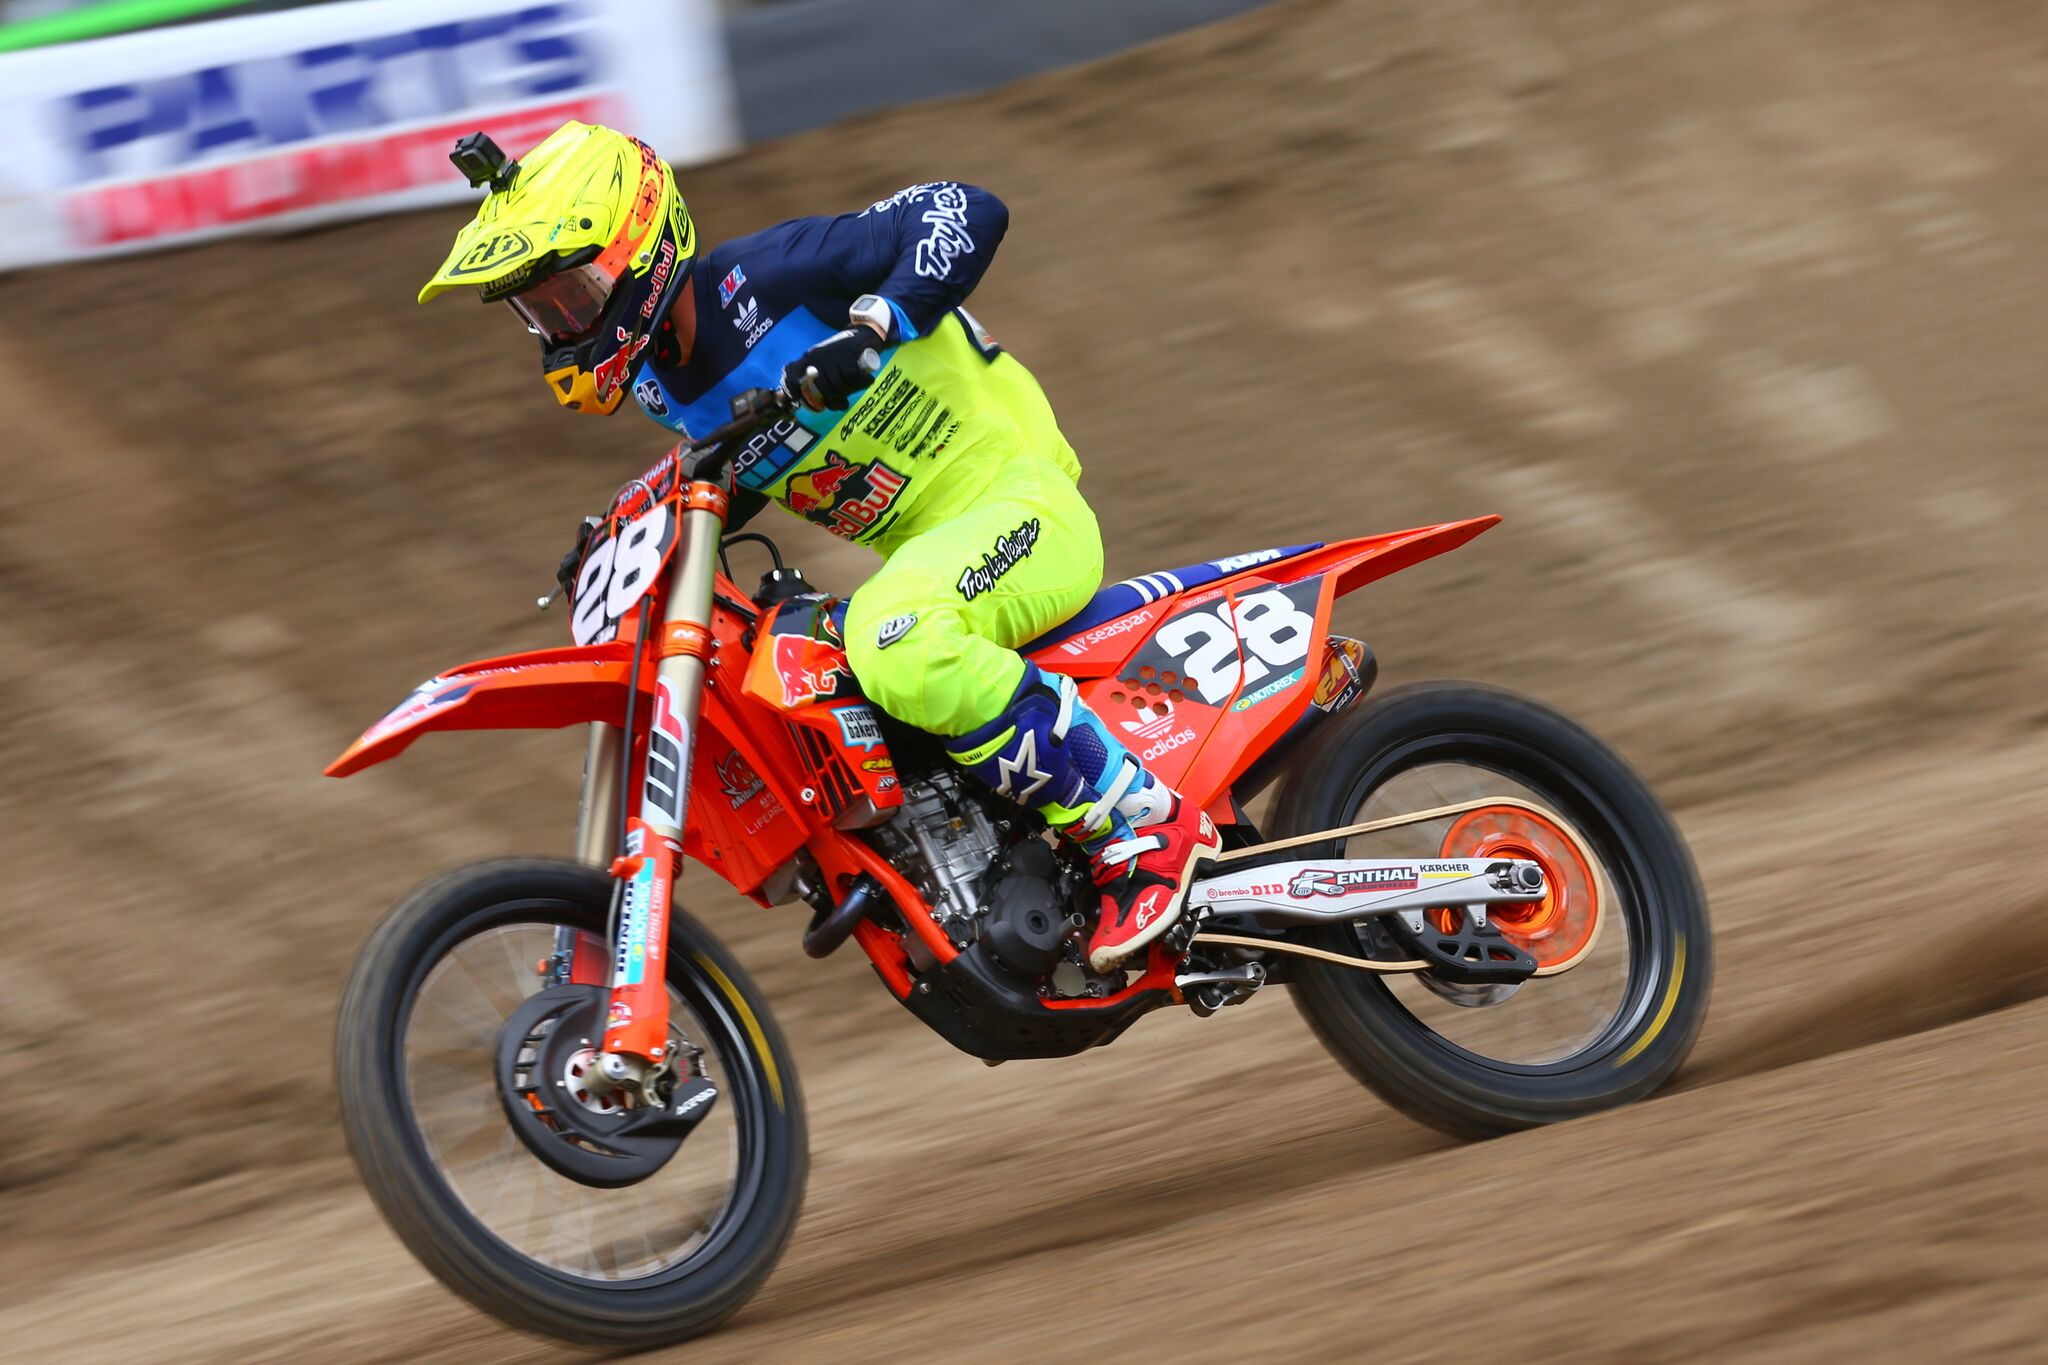 Troy Lee Designs Red Bull KTM's McElrath Anaheim-2